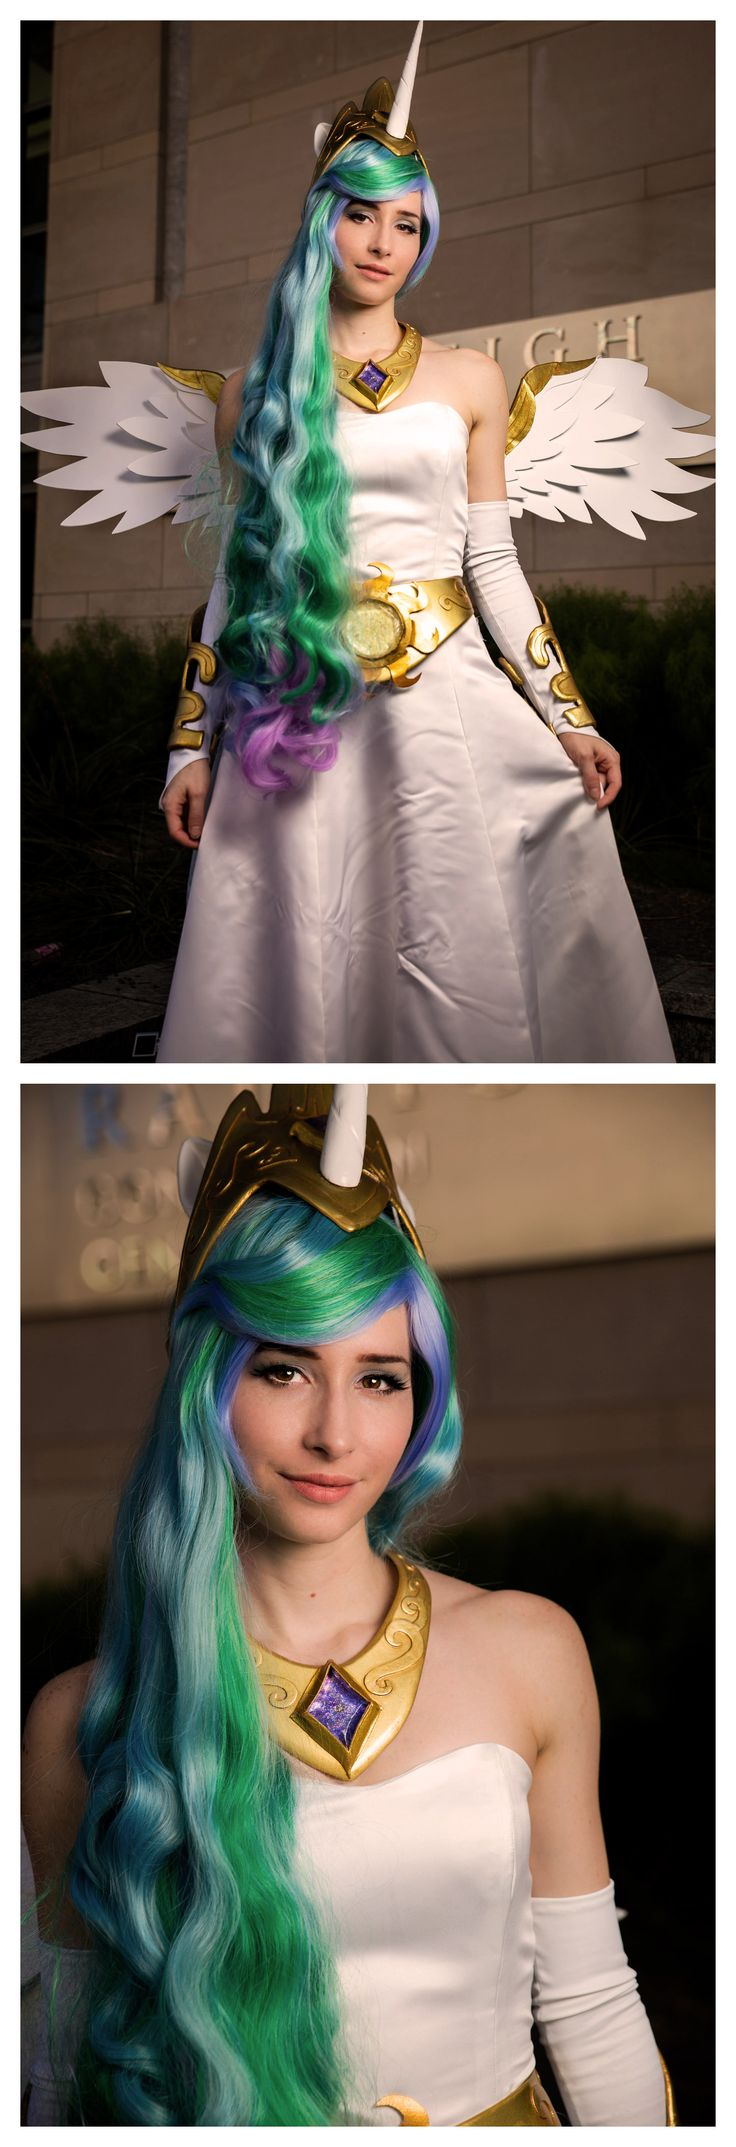 Princess Celestia from My Little Pony #Cosplay